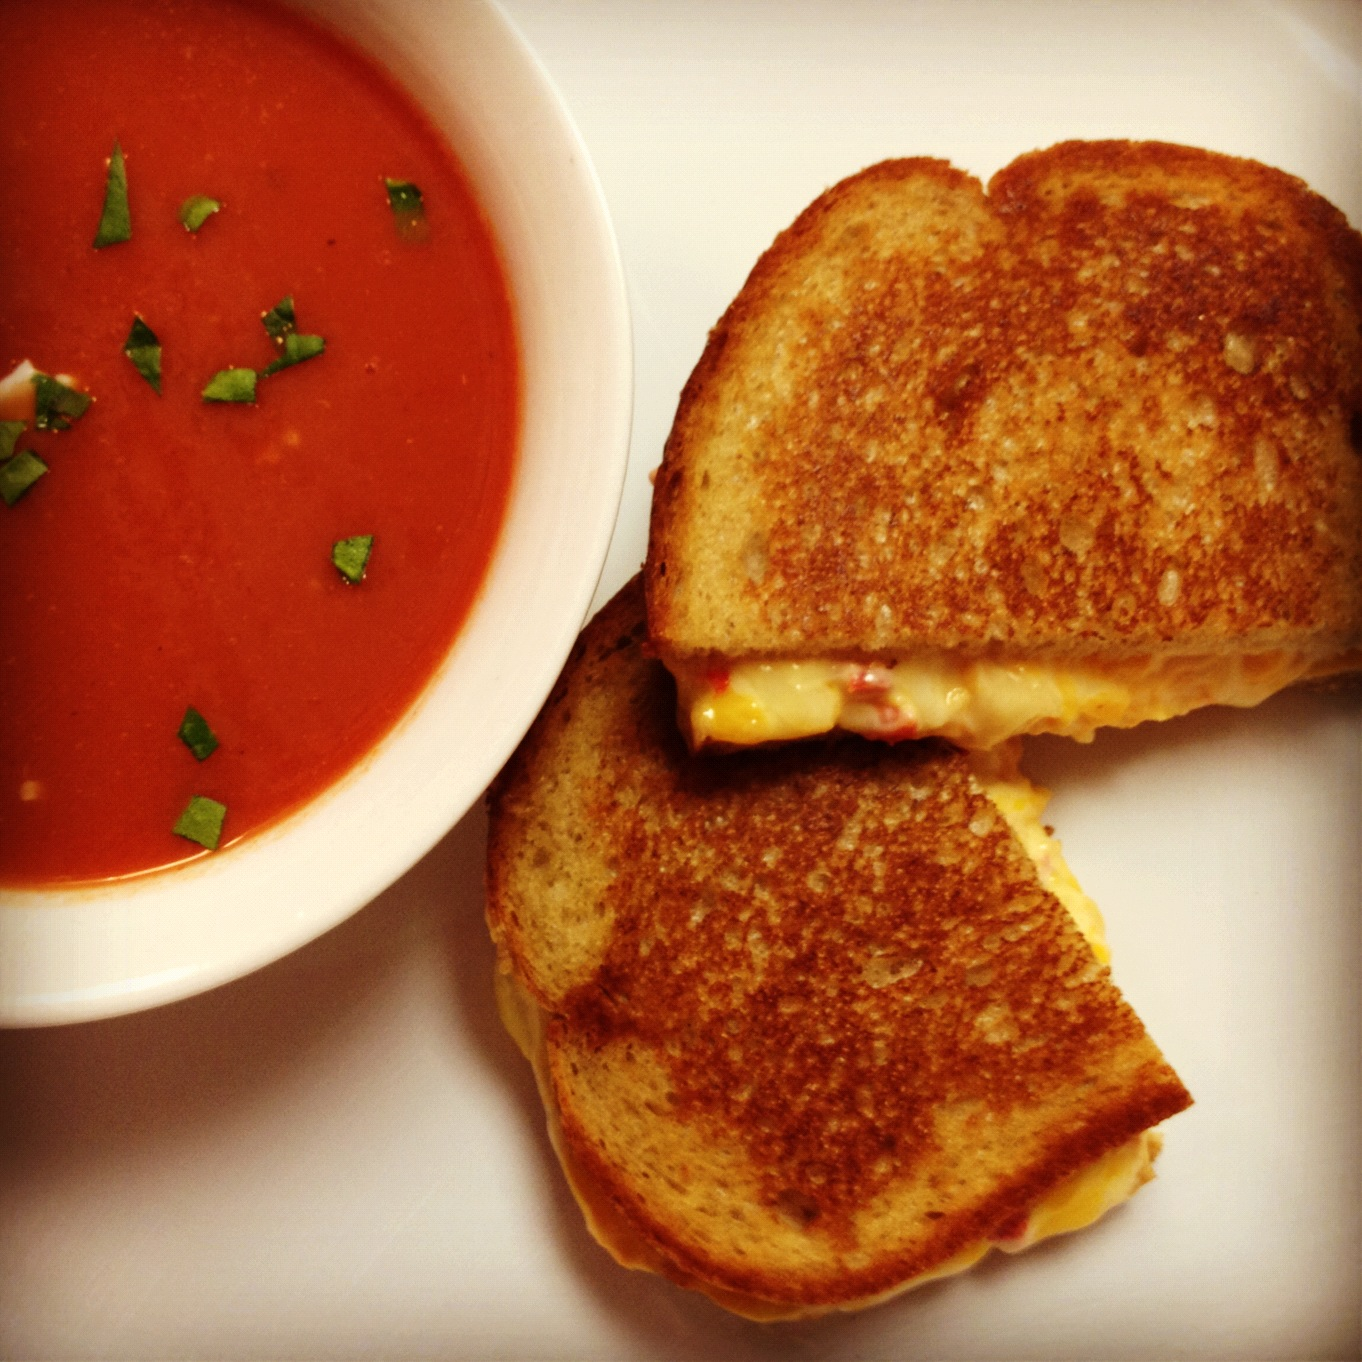 Grilled Cheese Sandwich is a Business Model